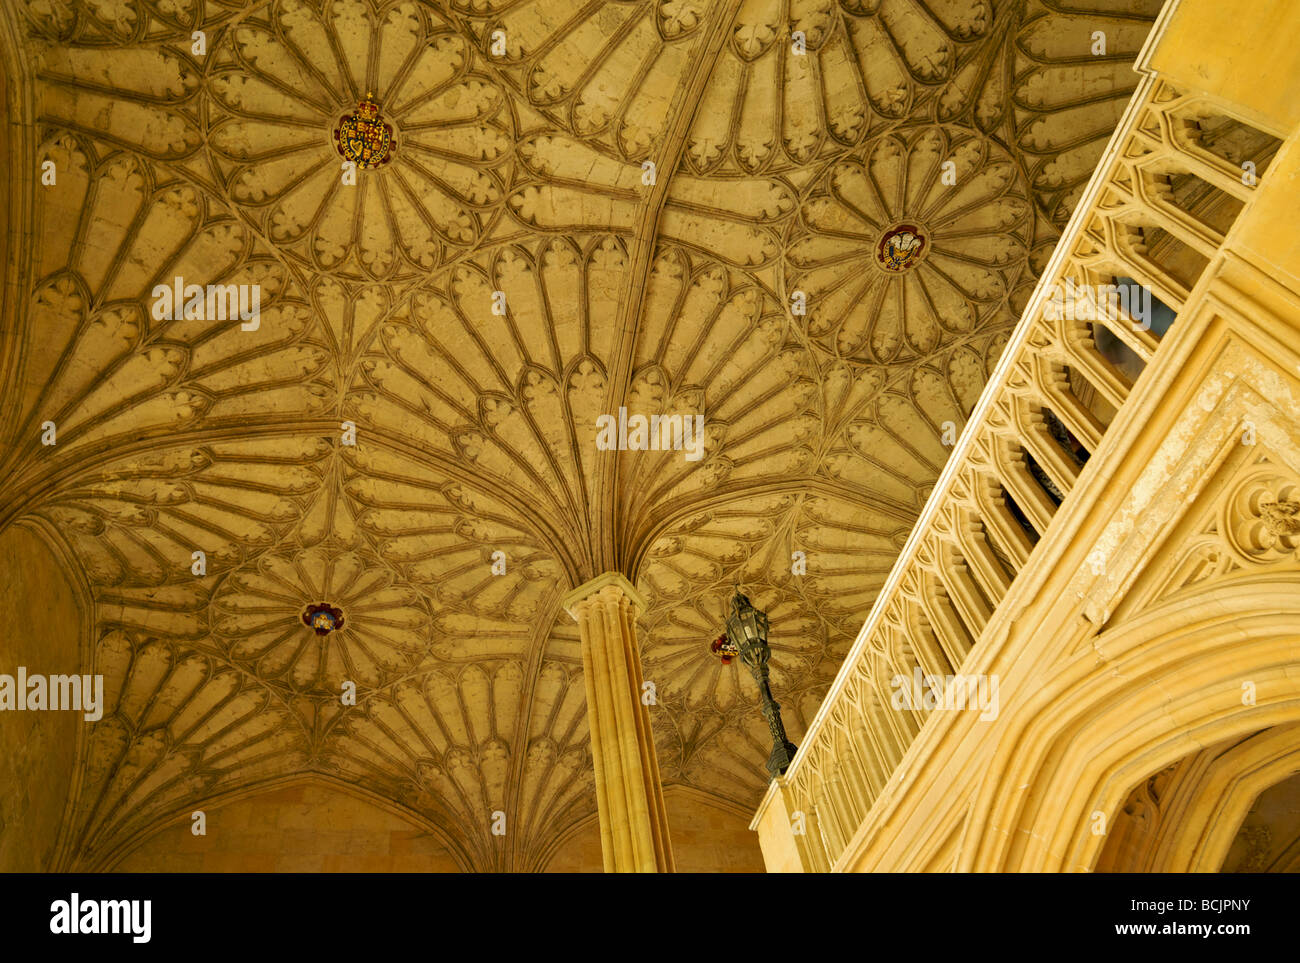 The elaborate fan-vaulted ceiling on the staircase at Christ Church college Oxford UK - Stock Image